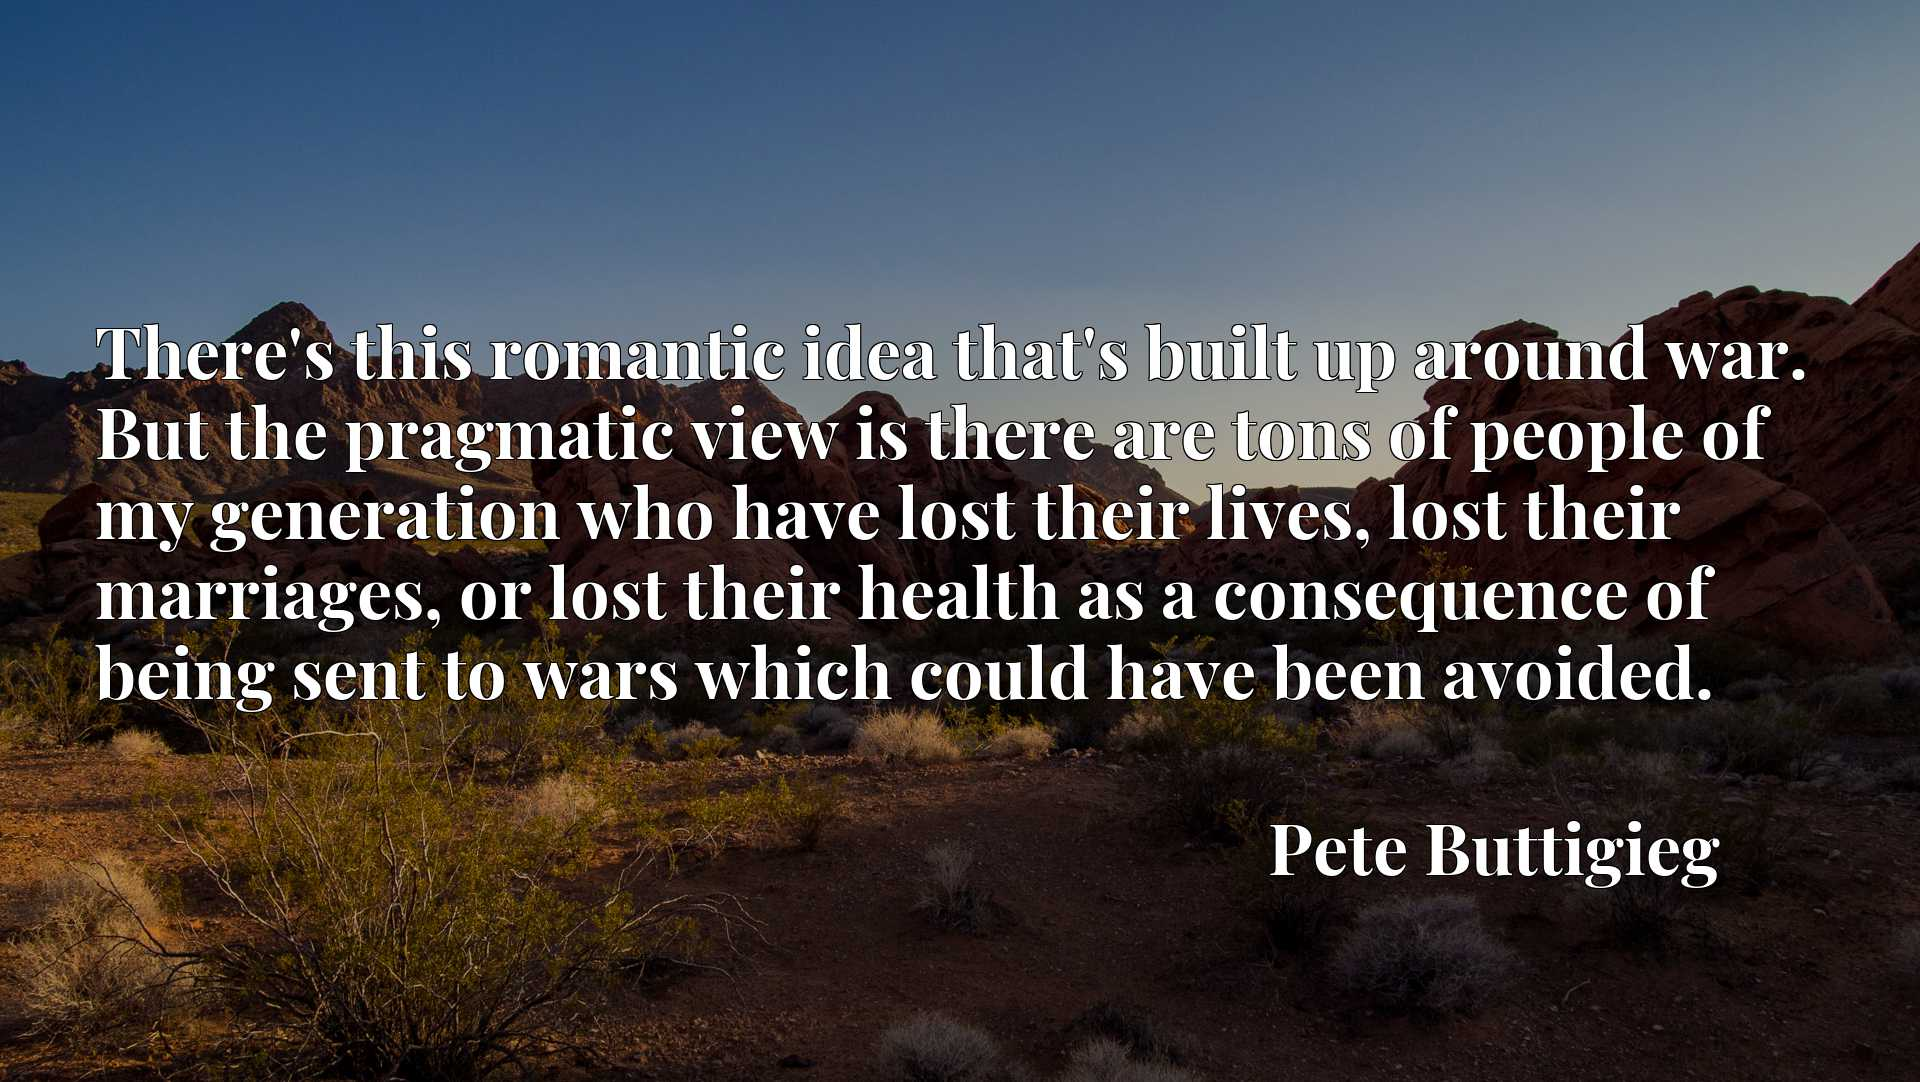 There's this romantic idea that's built up around war. But the pragmatic view is there are tons of people of my generation who have lost their lives, lost their marriages, or lost their health as a consequence of being sent to wars which could have been avoided.